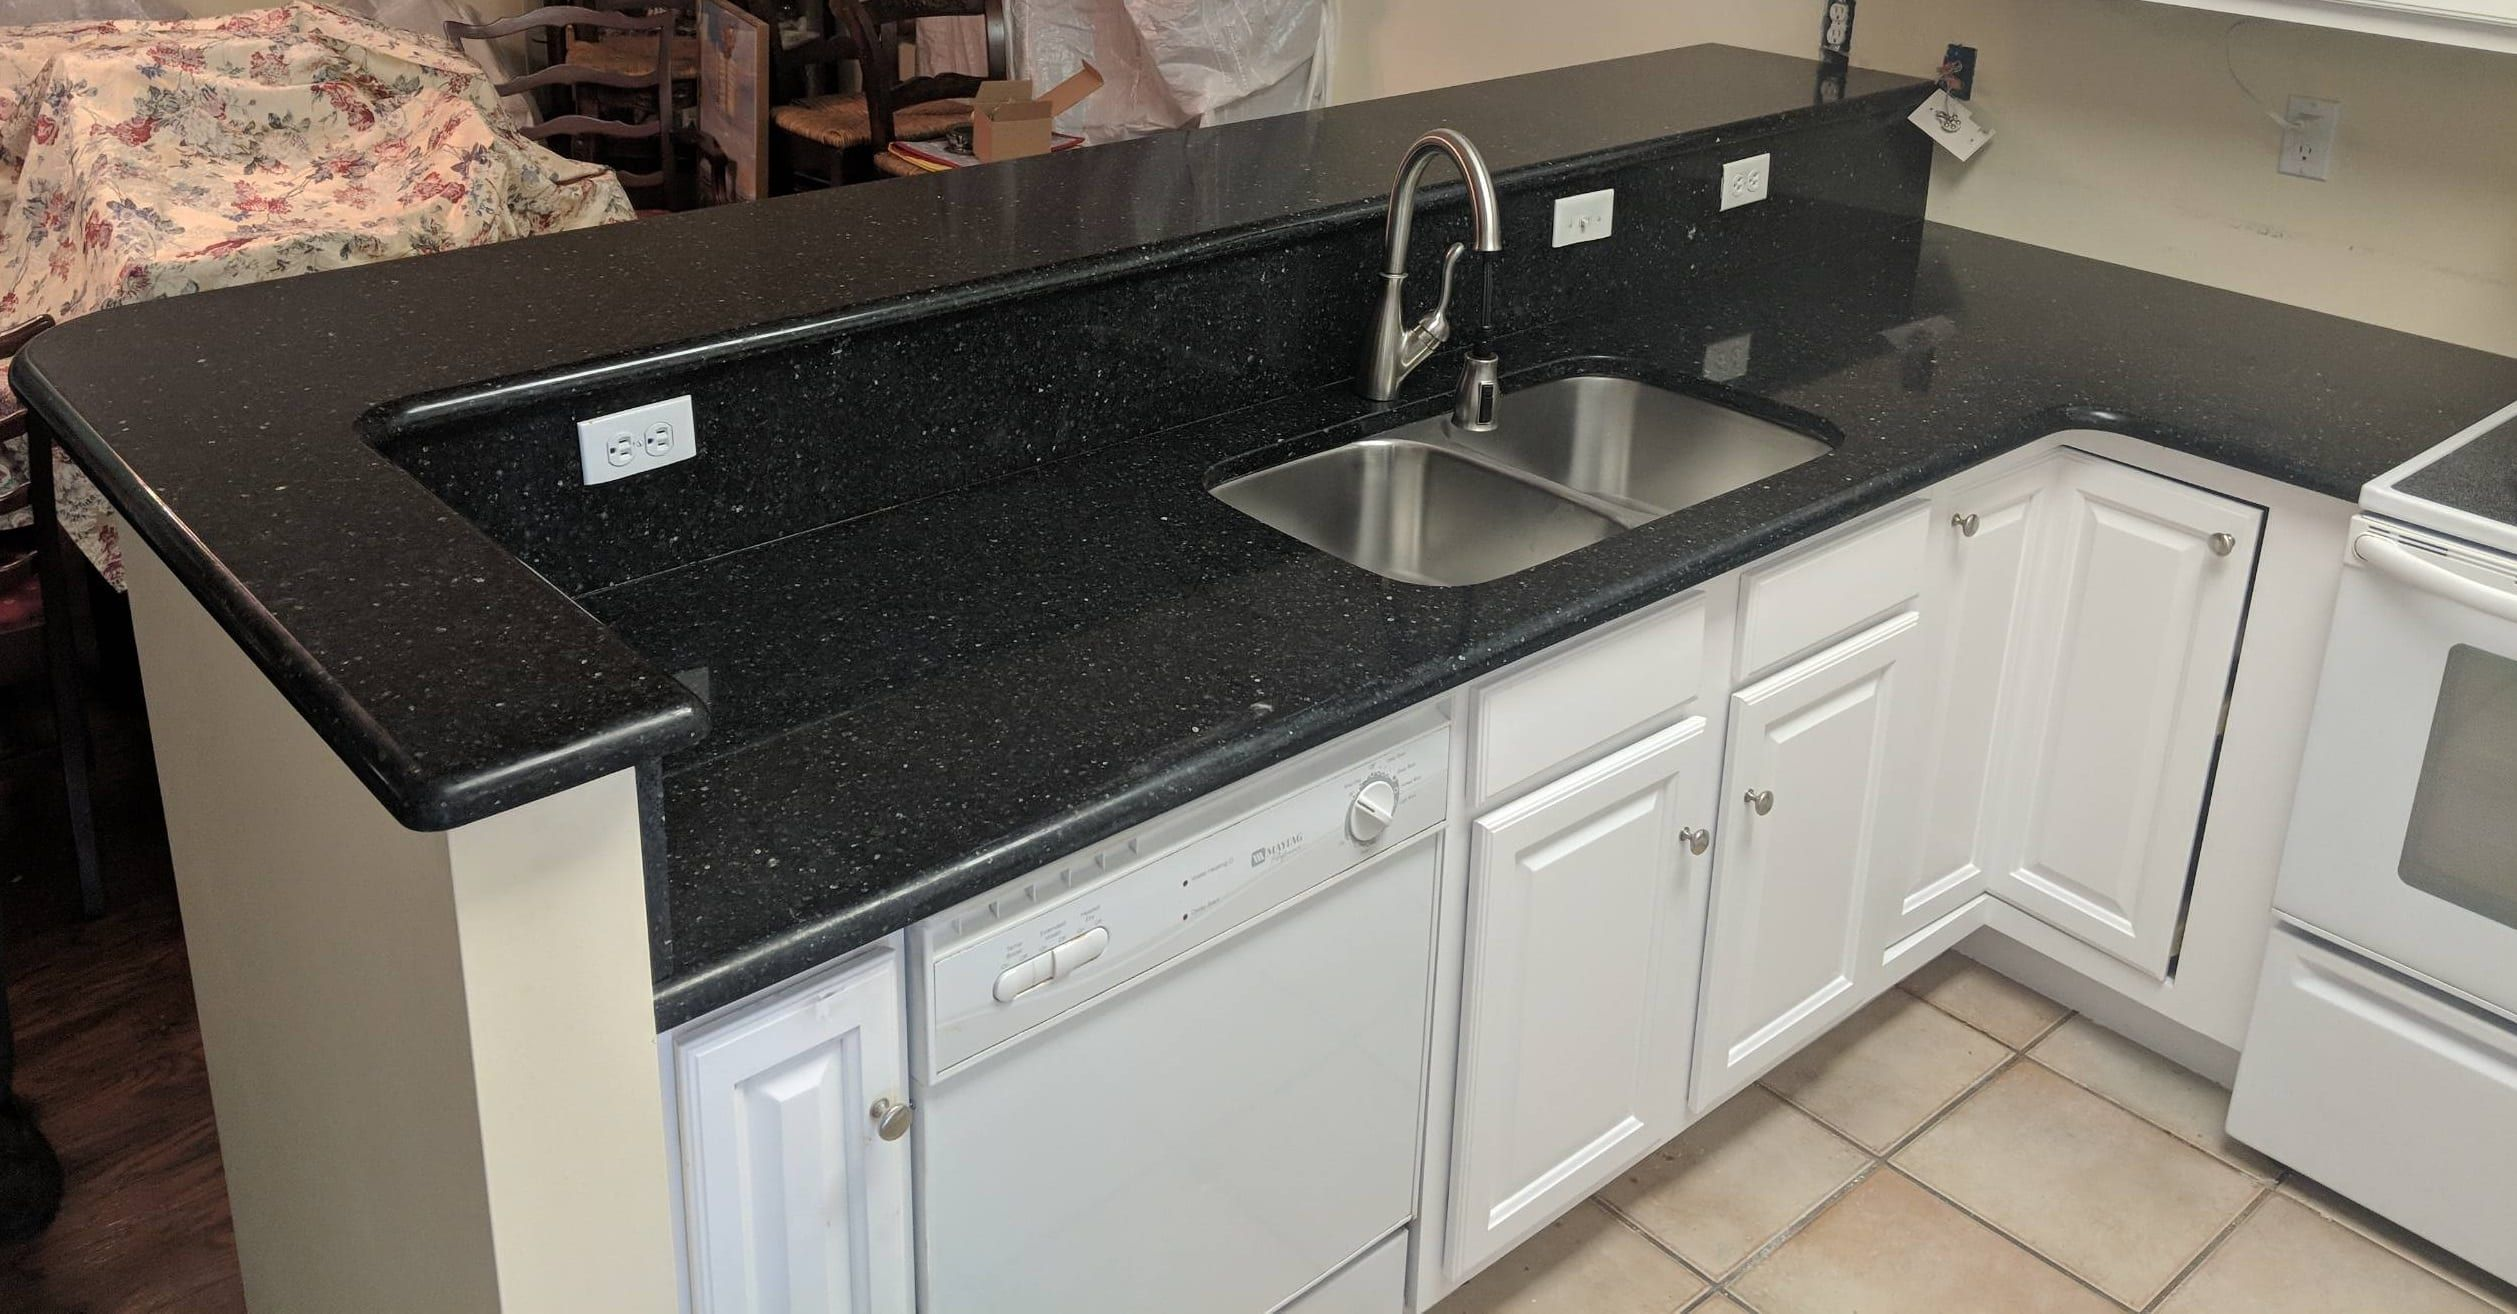 Type Of Job Kitchen Countertops Material Quartz Color Black